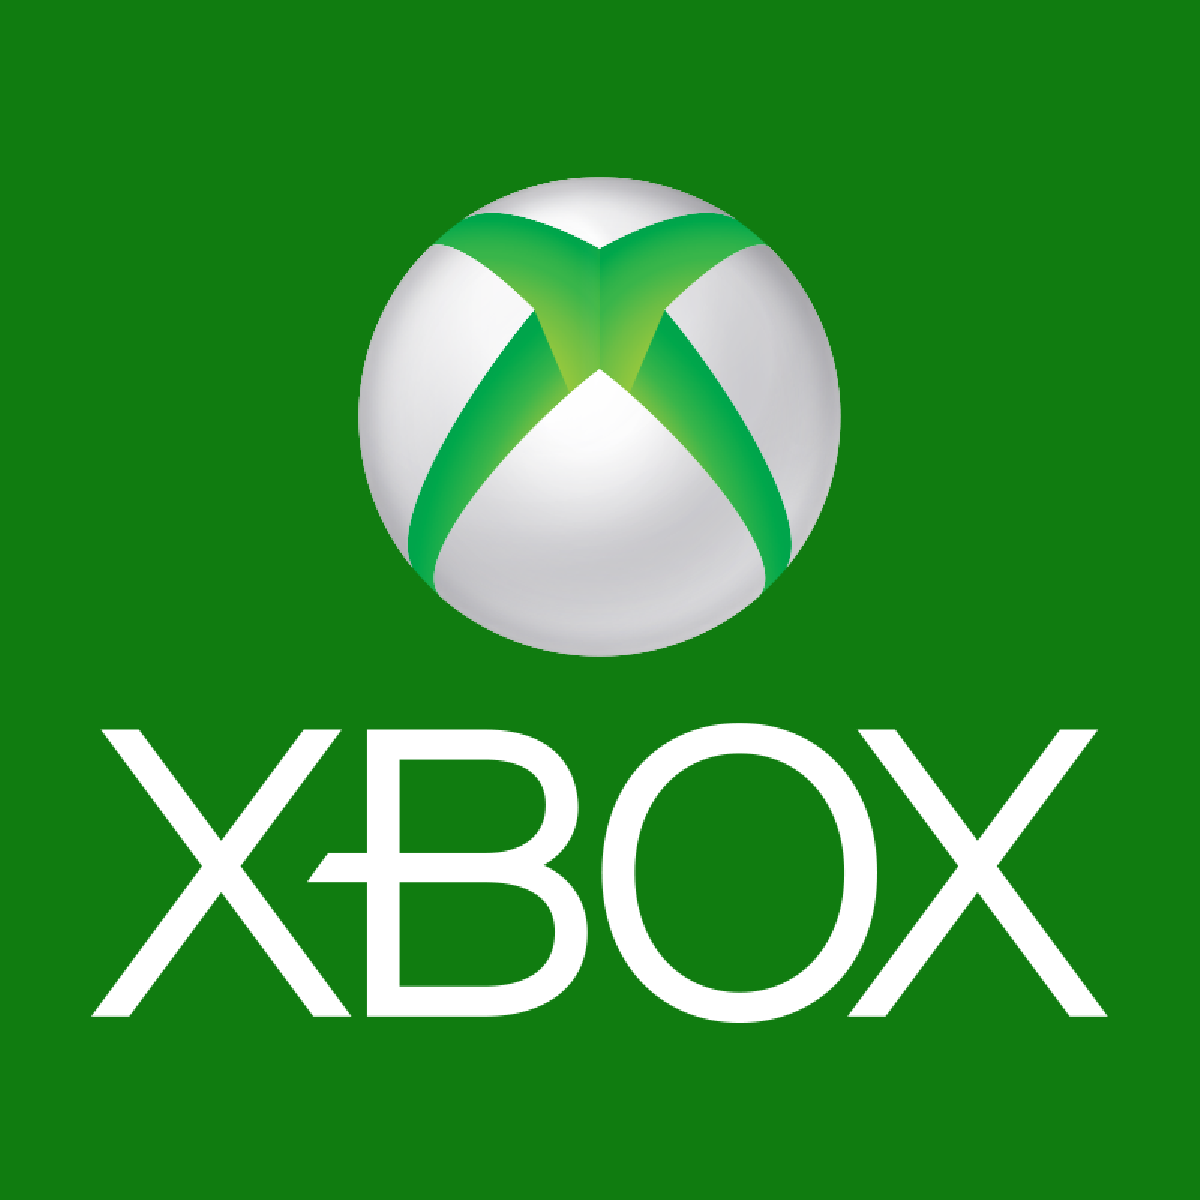 xbox-is-a-video-gaming-brand-created-and-owned-by-microsoft